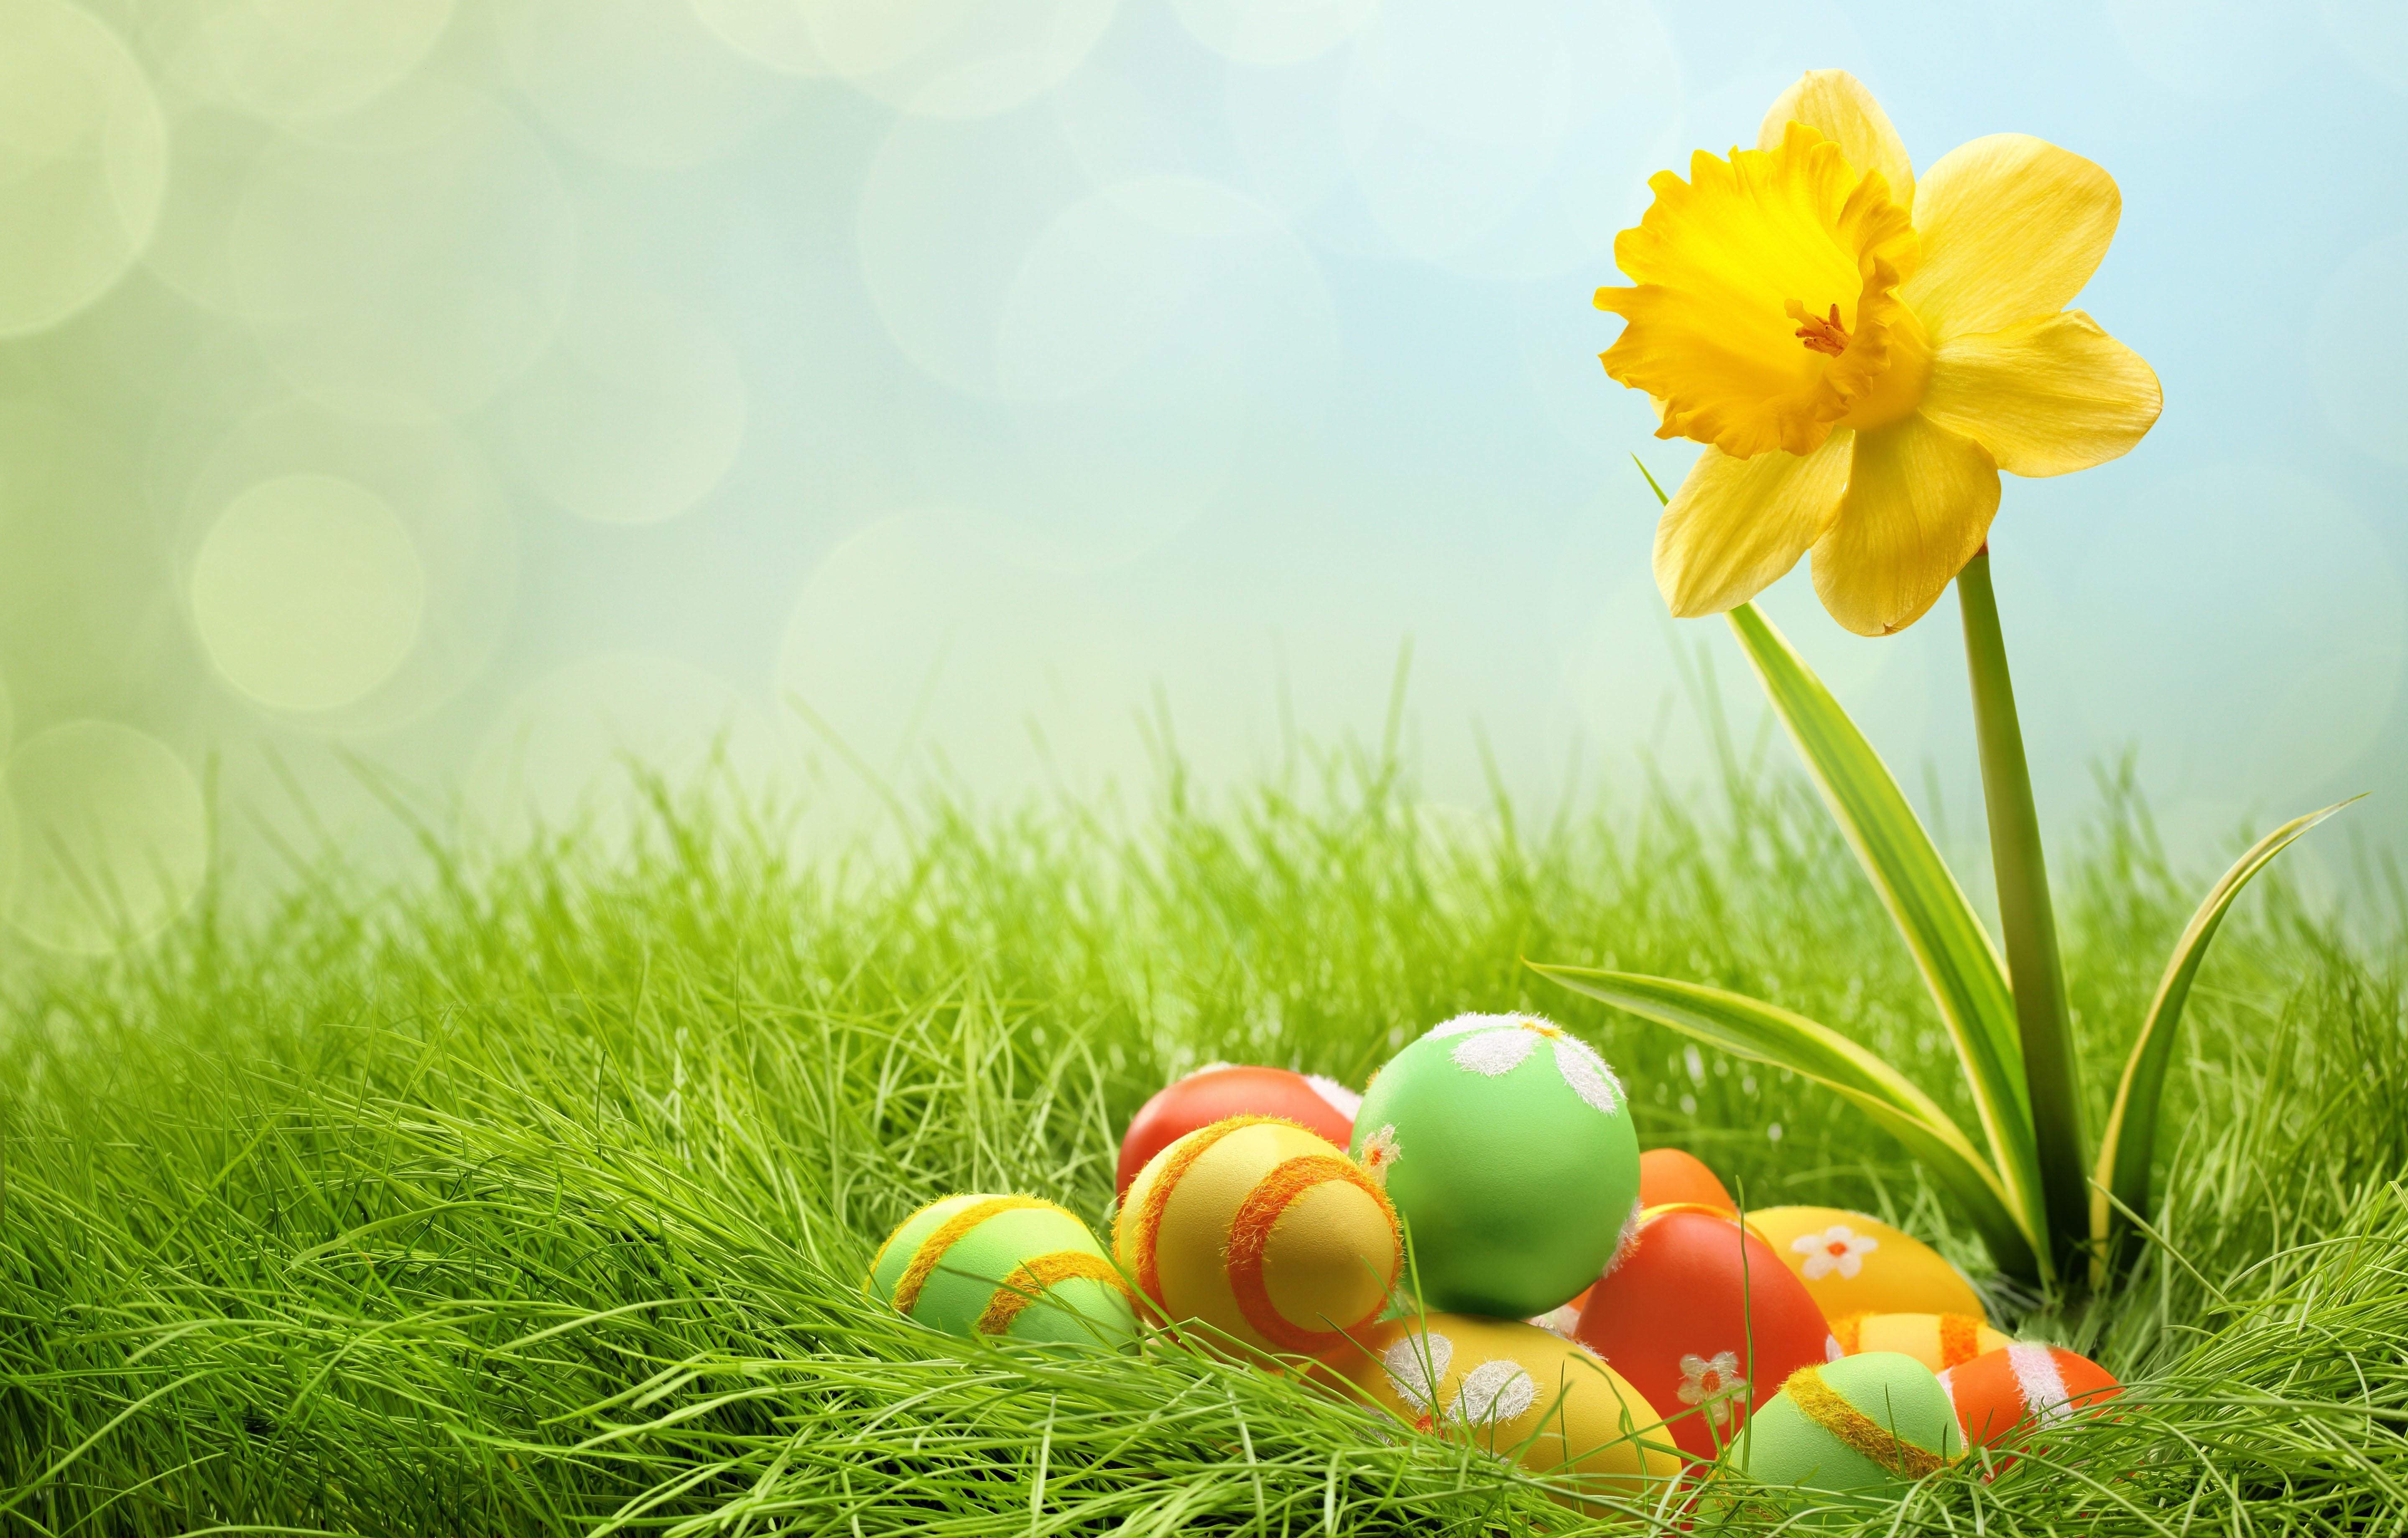 Free Easter Wallpaper HD For Your Desktop 50